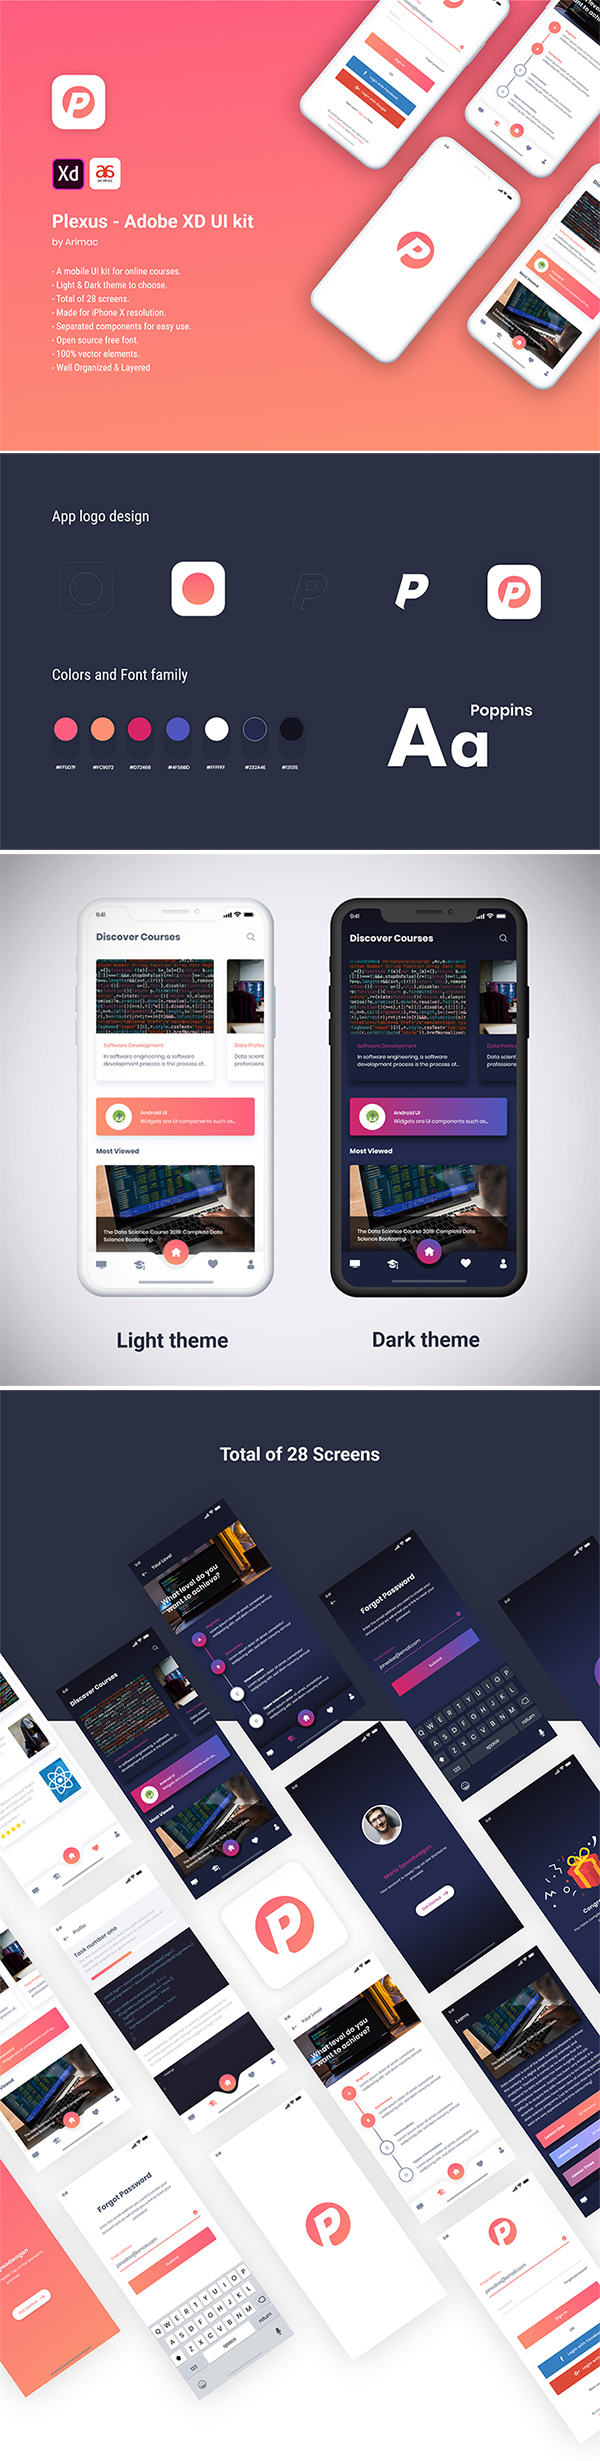 Free Download Creative Plexus Mobile UI kit (Adobe XD)